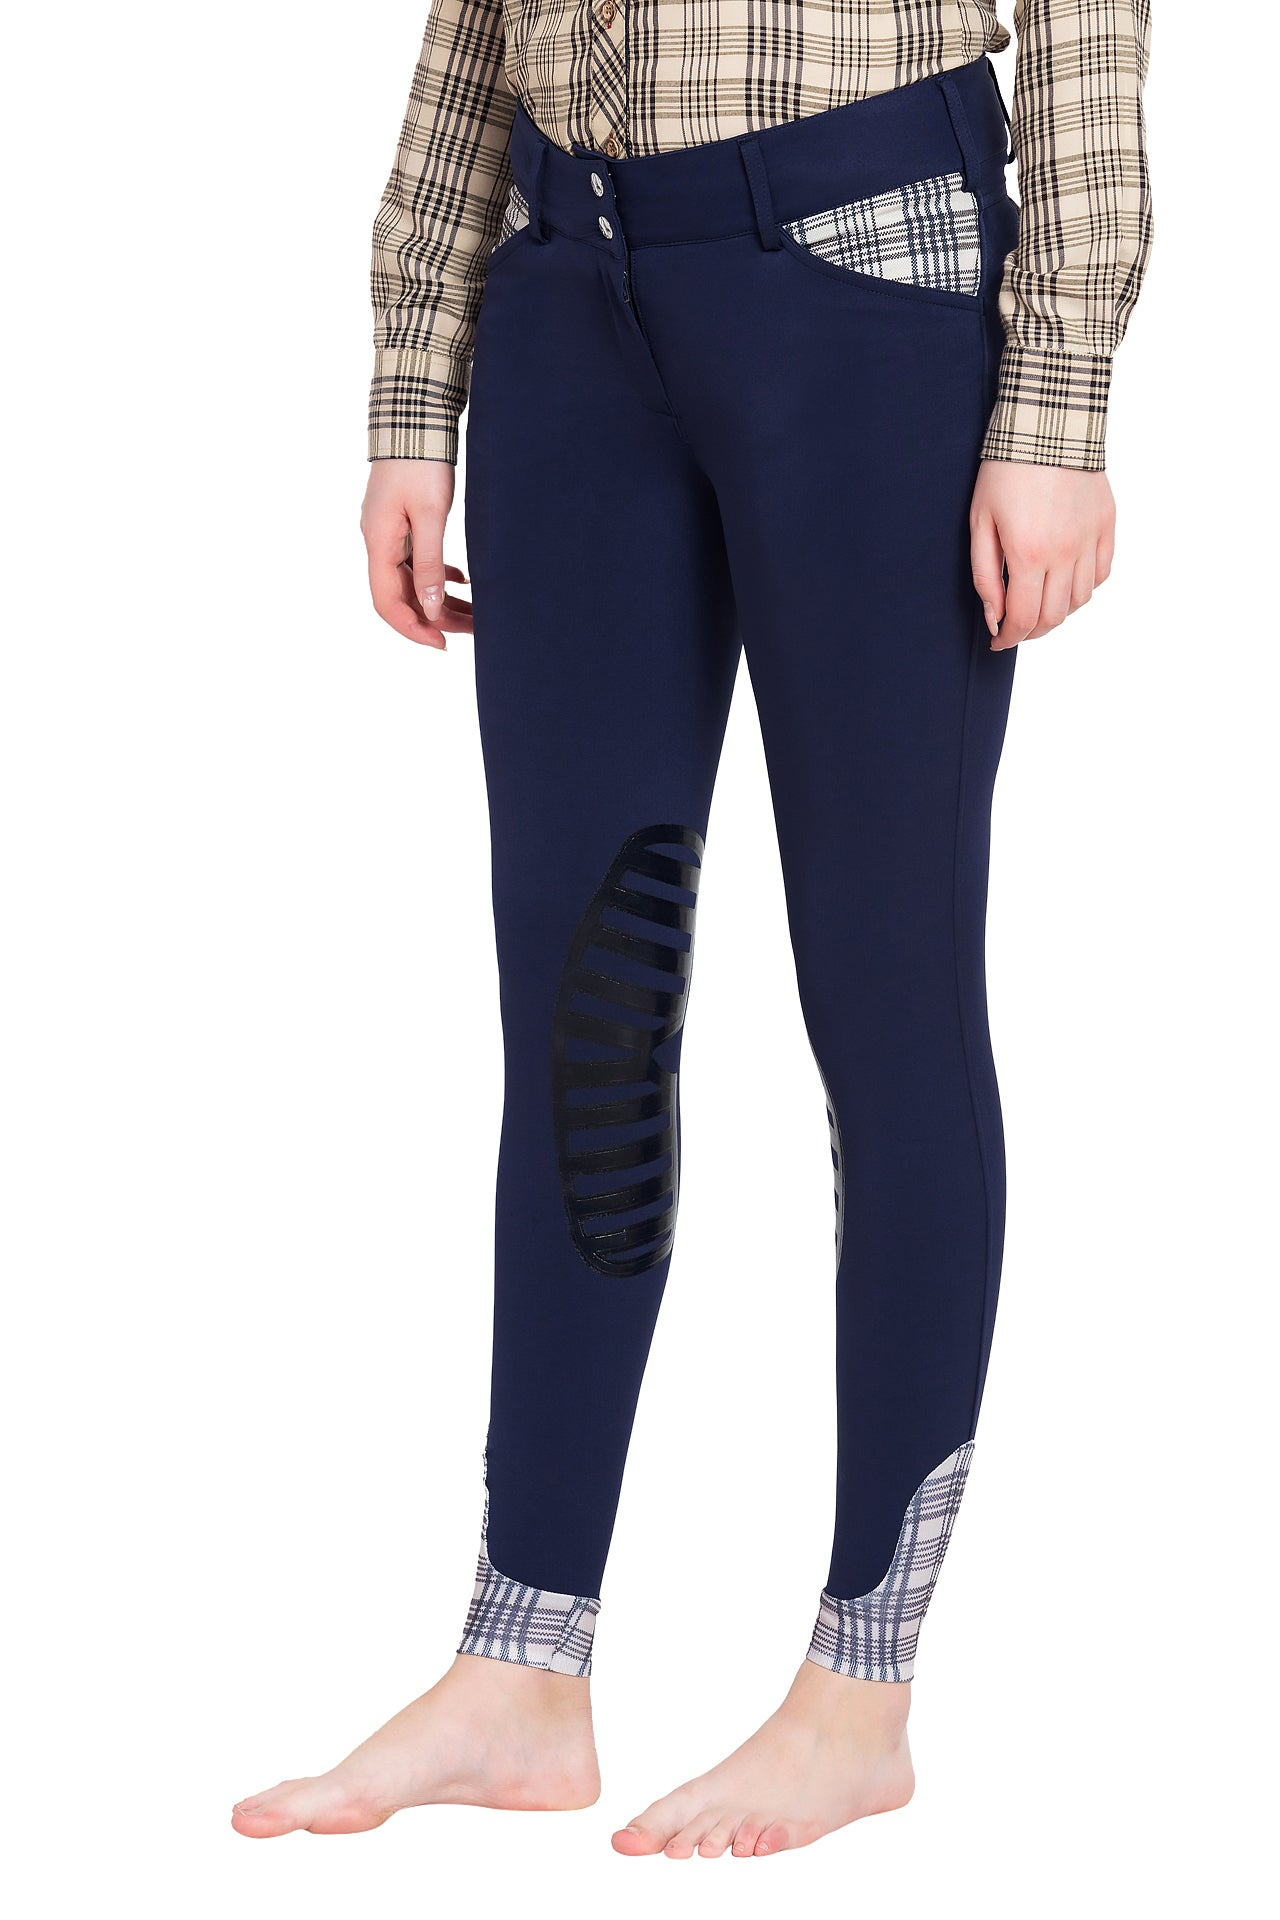 5/A Baker Ladies Pro Silicone Knee Patch Breeches_1